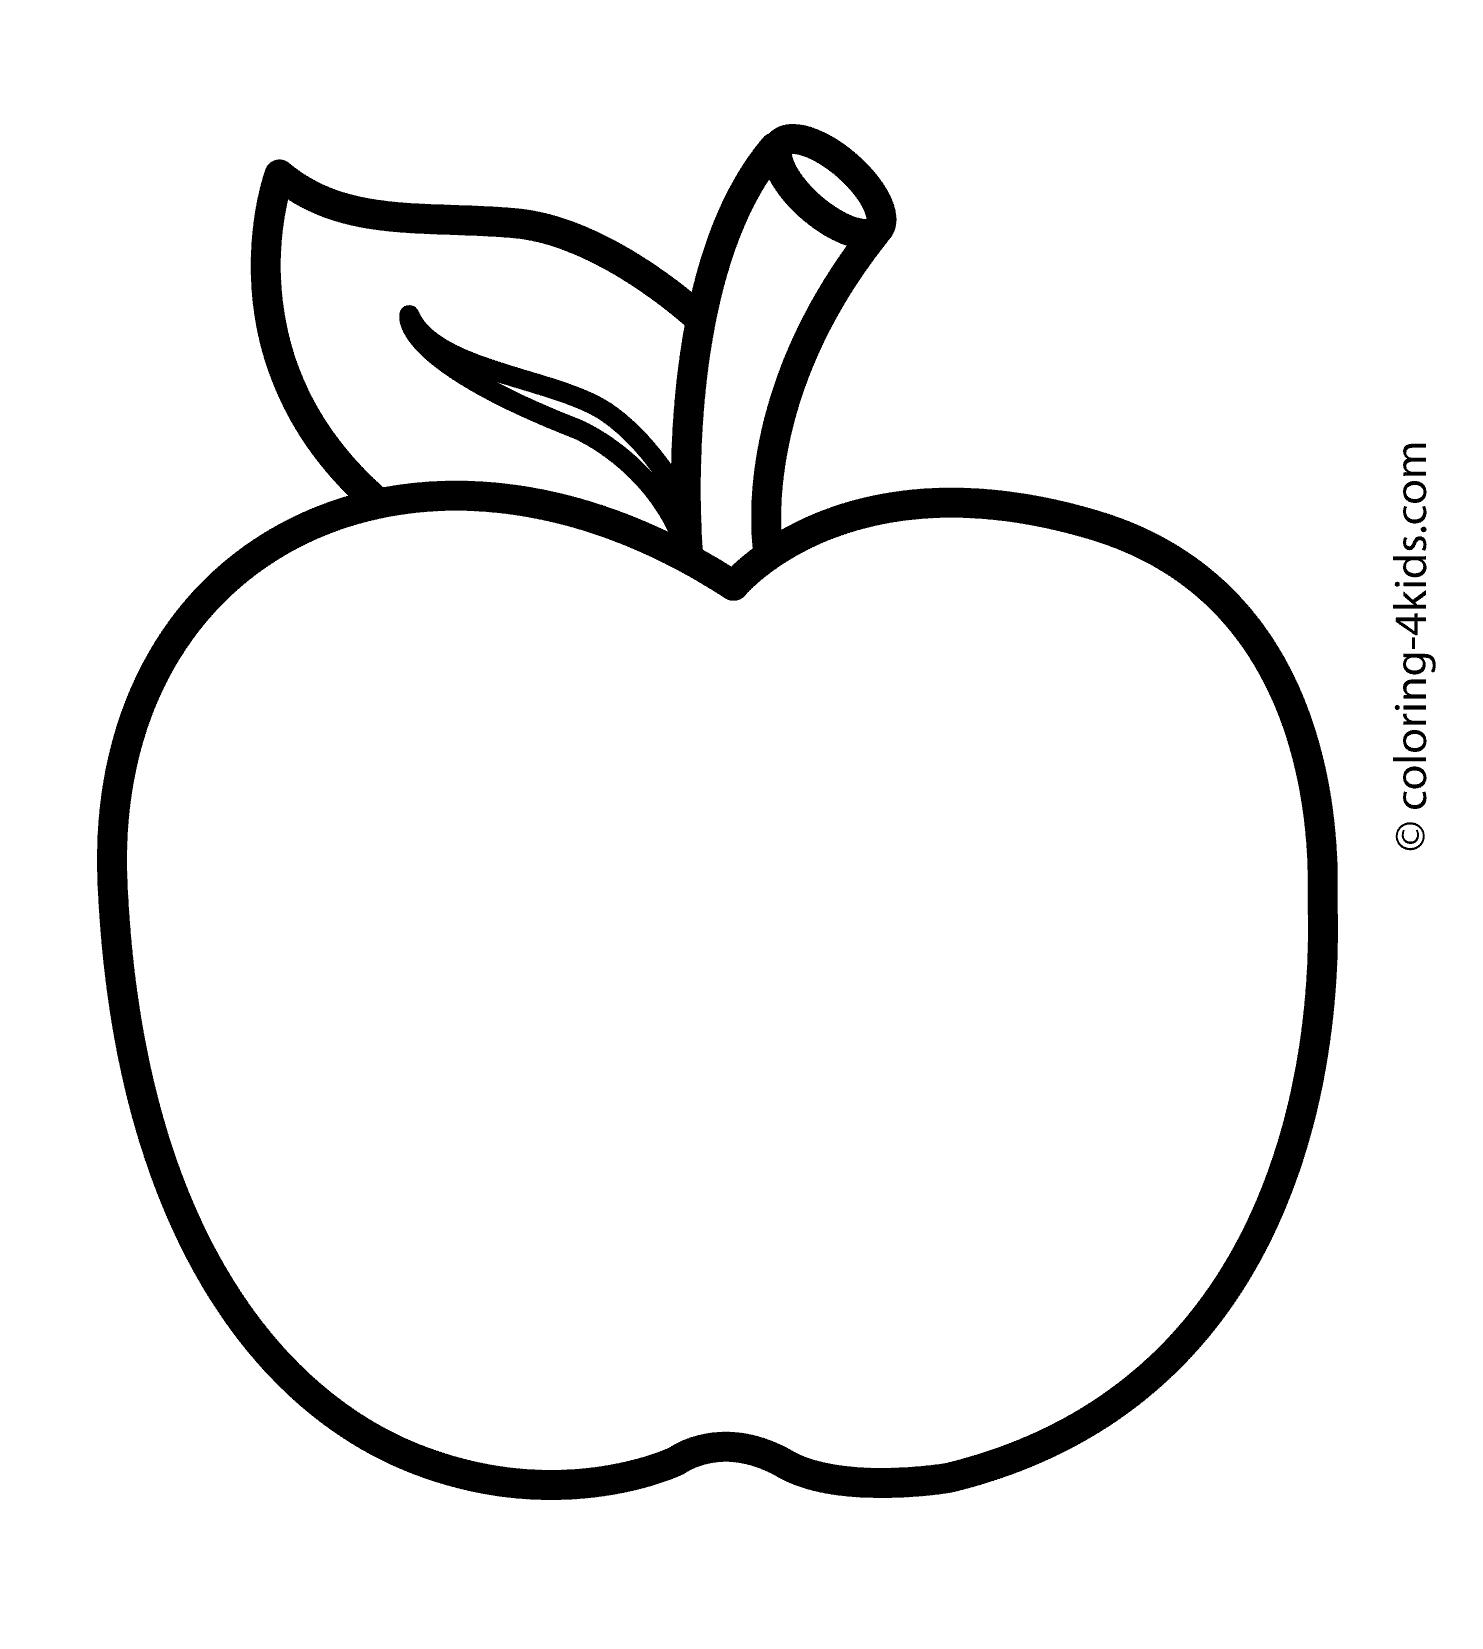 Free Coloring Pages Of An Apple : Apple coloring pages fotolip rich image and wallpaper